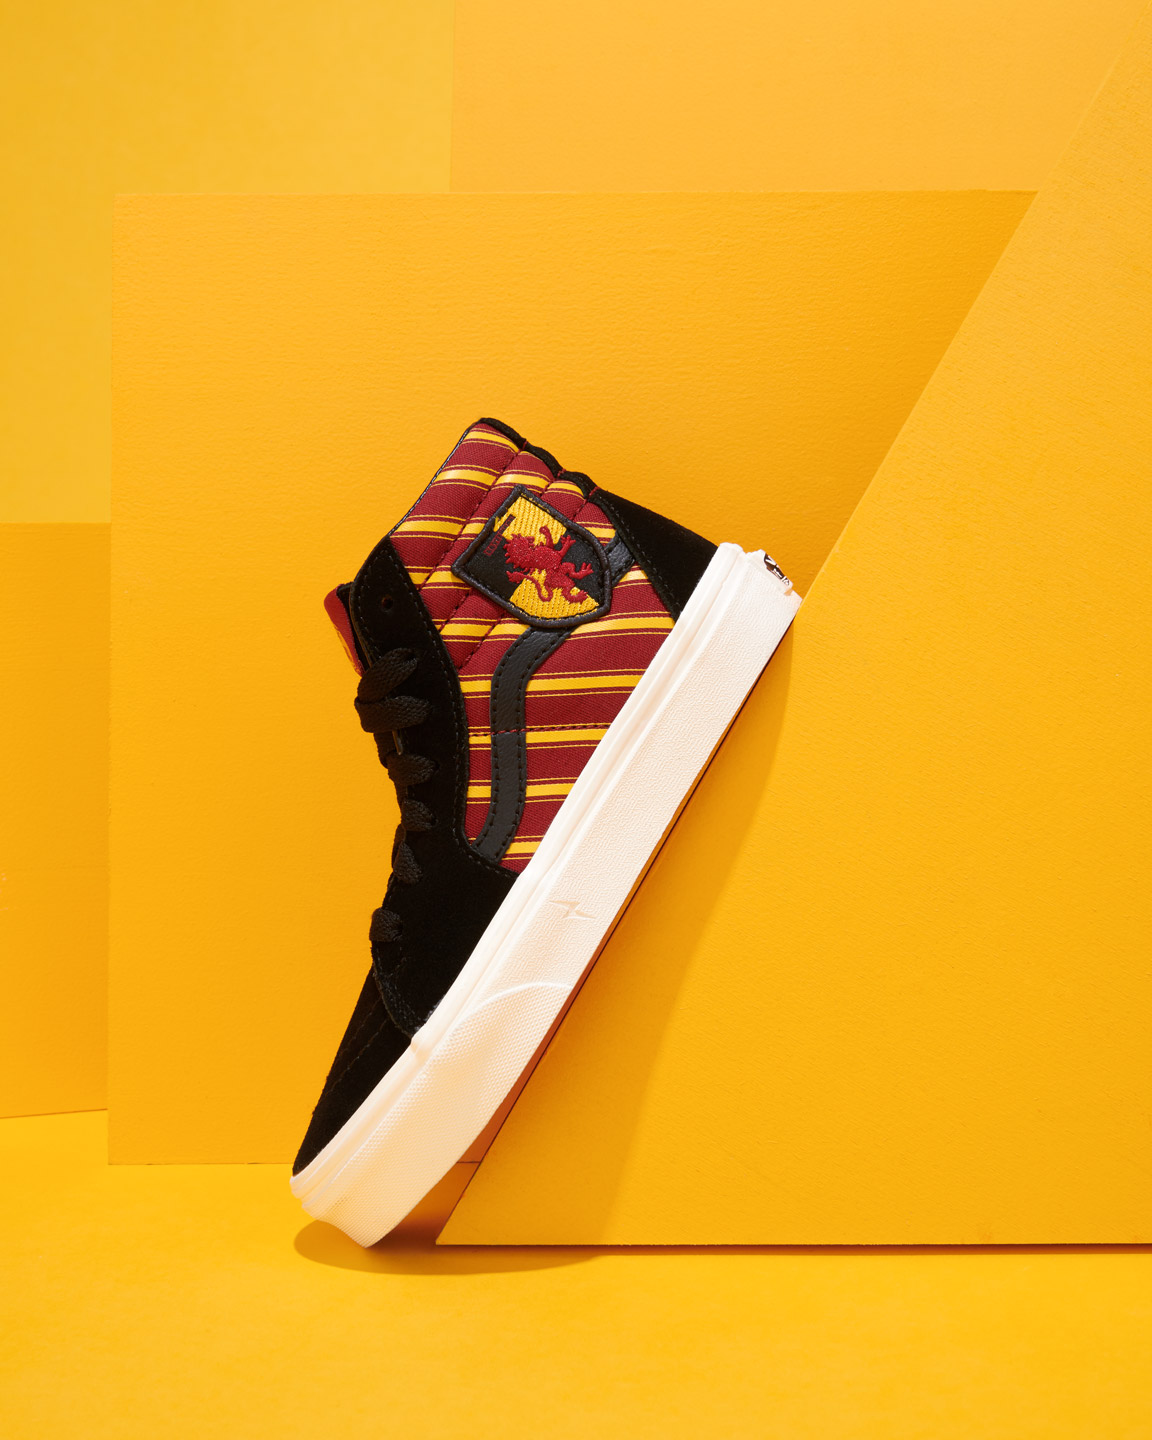 2019_08_22_Blaps_Vans_Harry_Potter_Sk8_High_20707